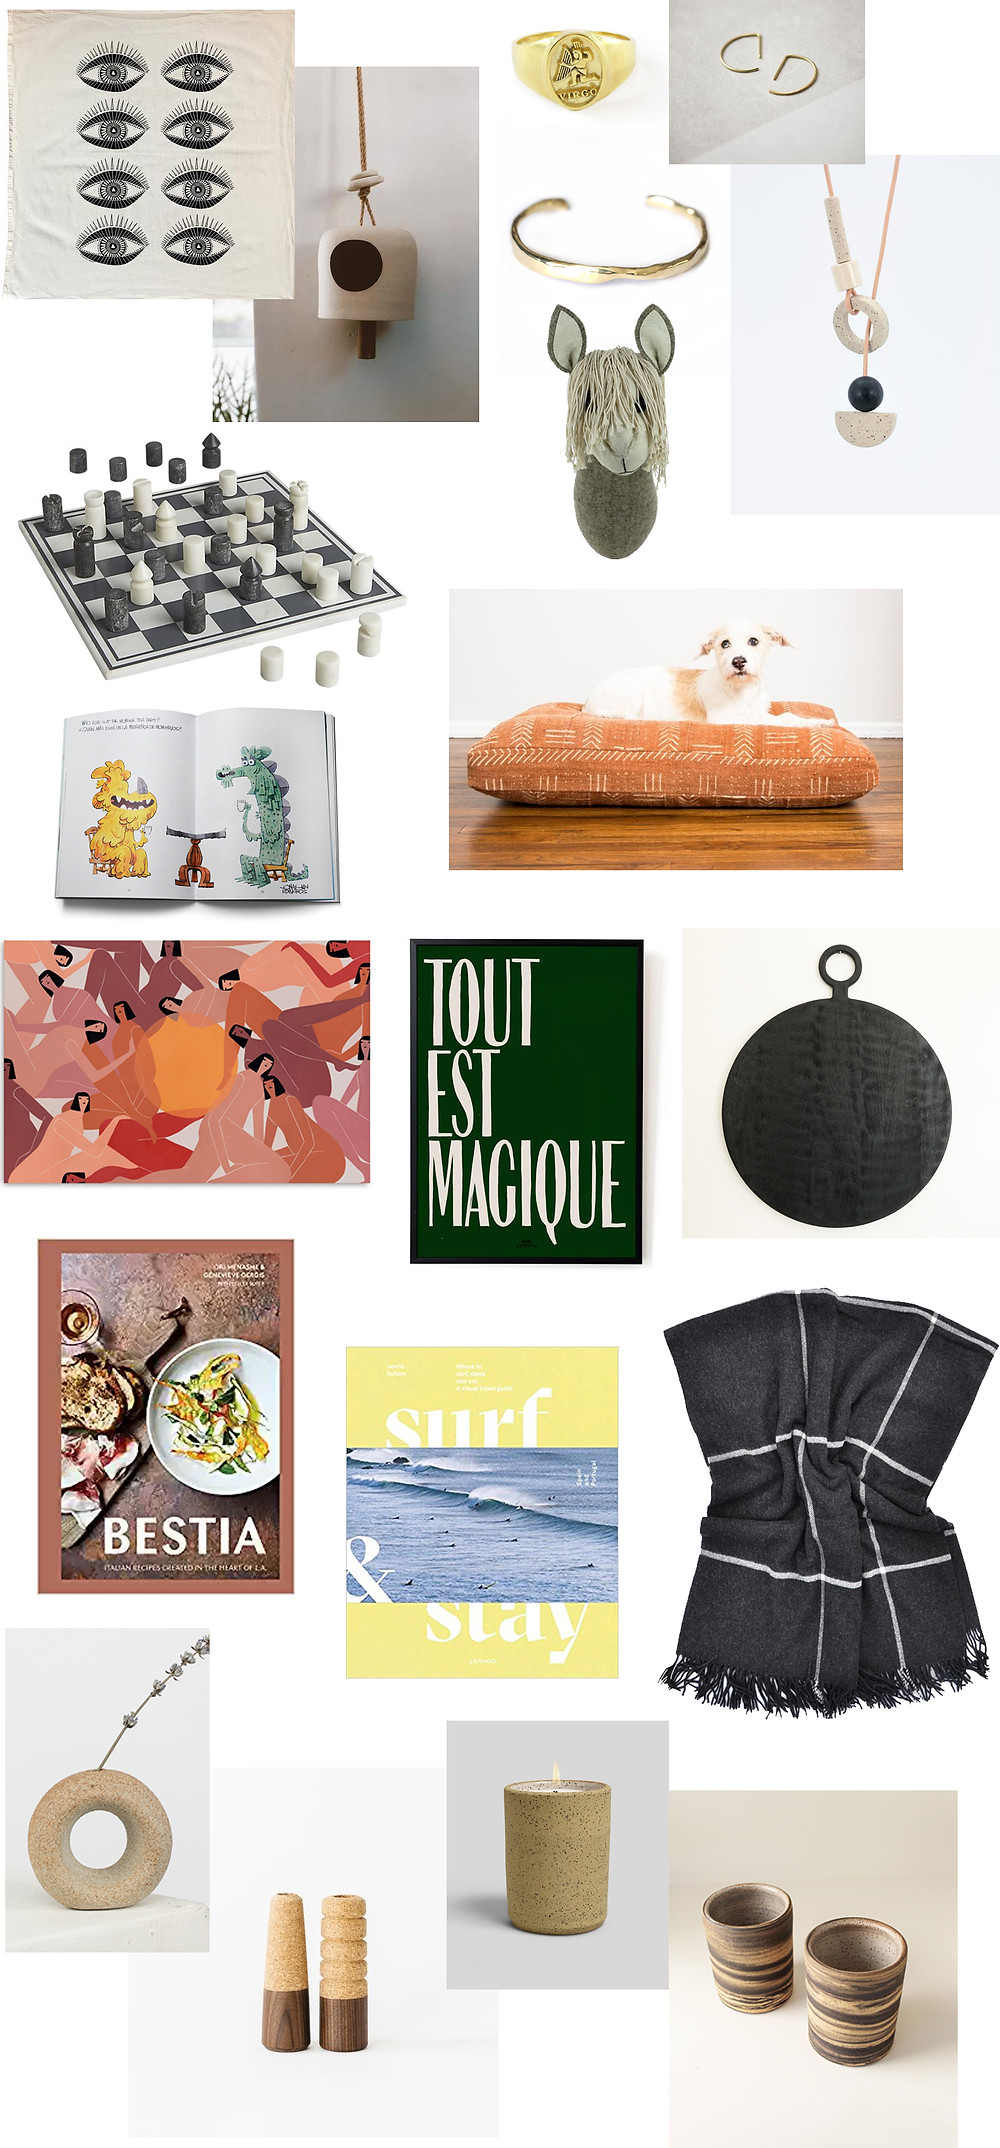 Images of gift ideas linked in the text of the blog post